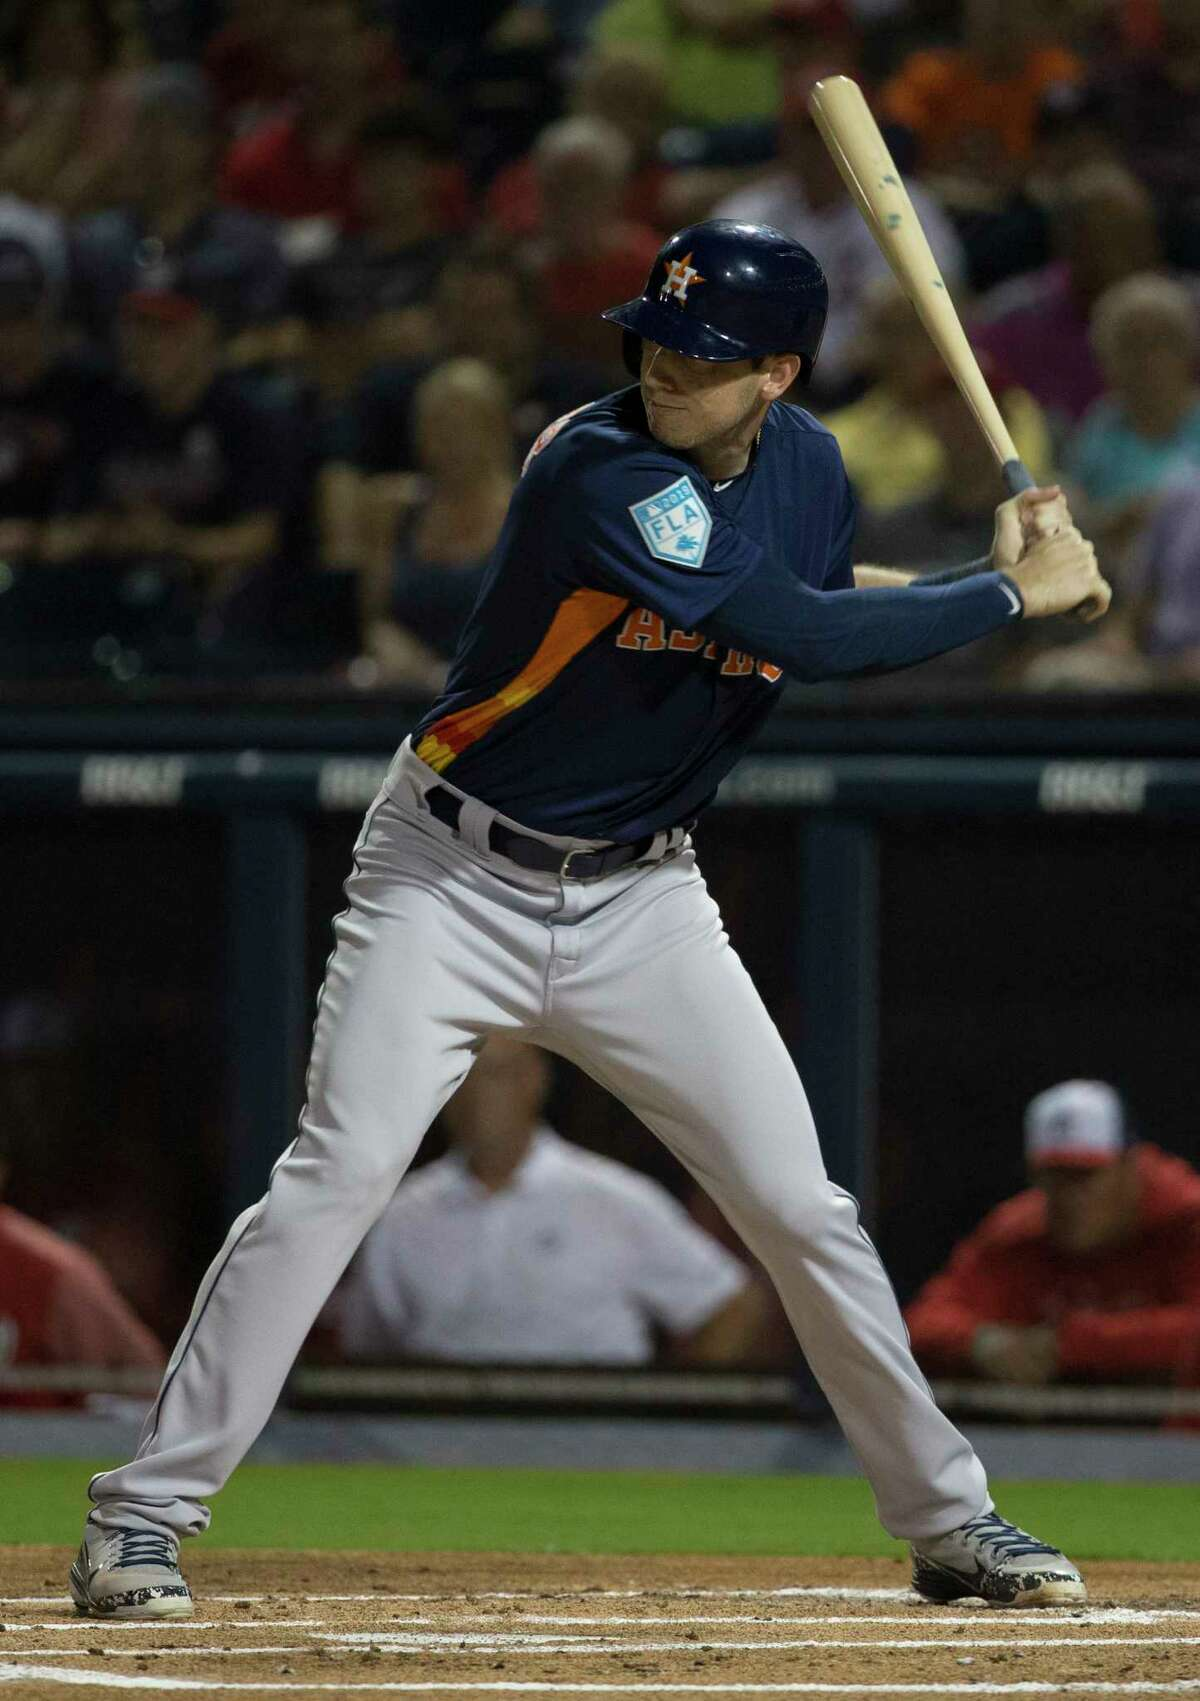 Houston Astros outfielder Kyle Tucker (3) at bat during the top first inning of the Houston Astros-Washington Nationals spring training opening game at Fitteam Ballpark of The Palm Beaches on Saturday, Feb. 23, 2019, in West Palm Beach.